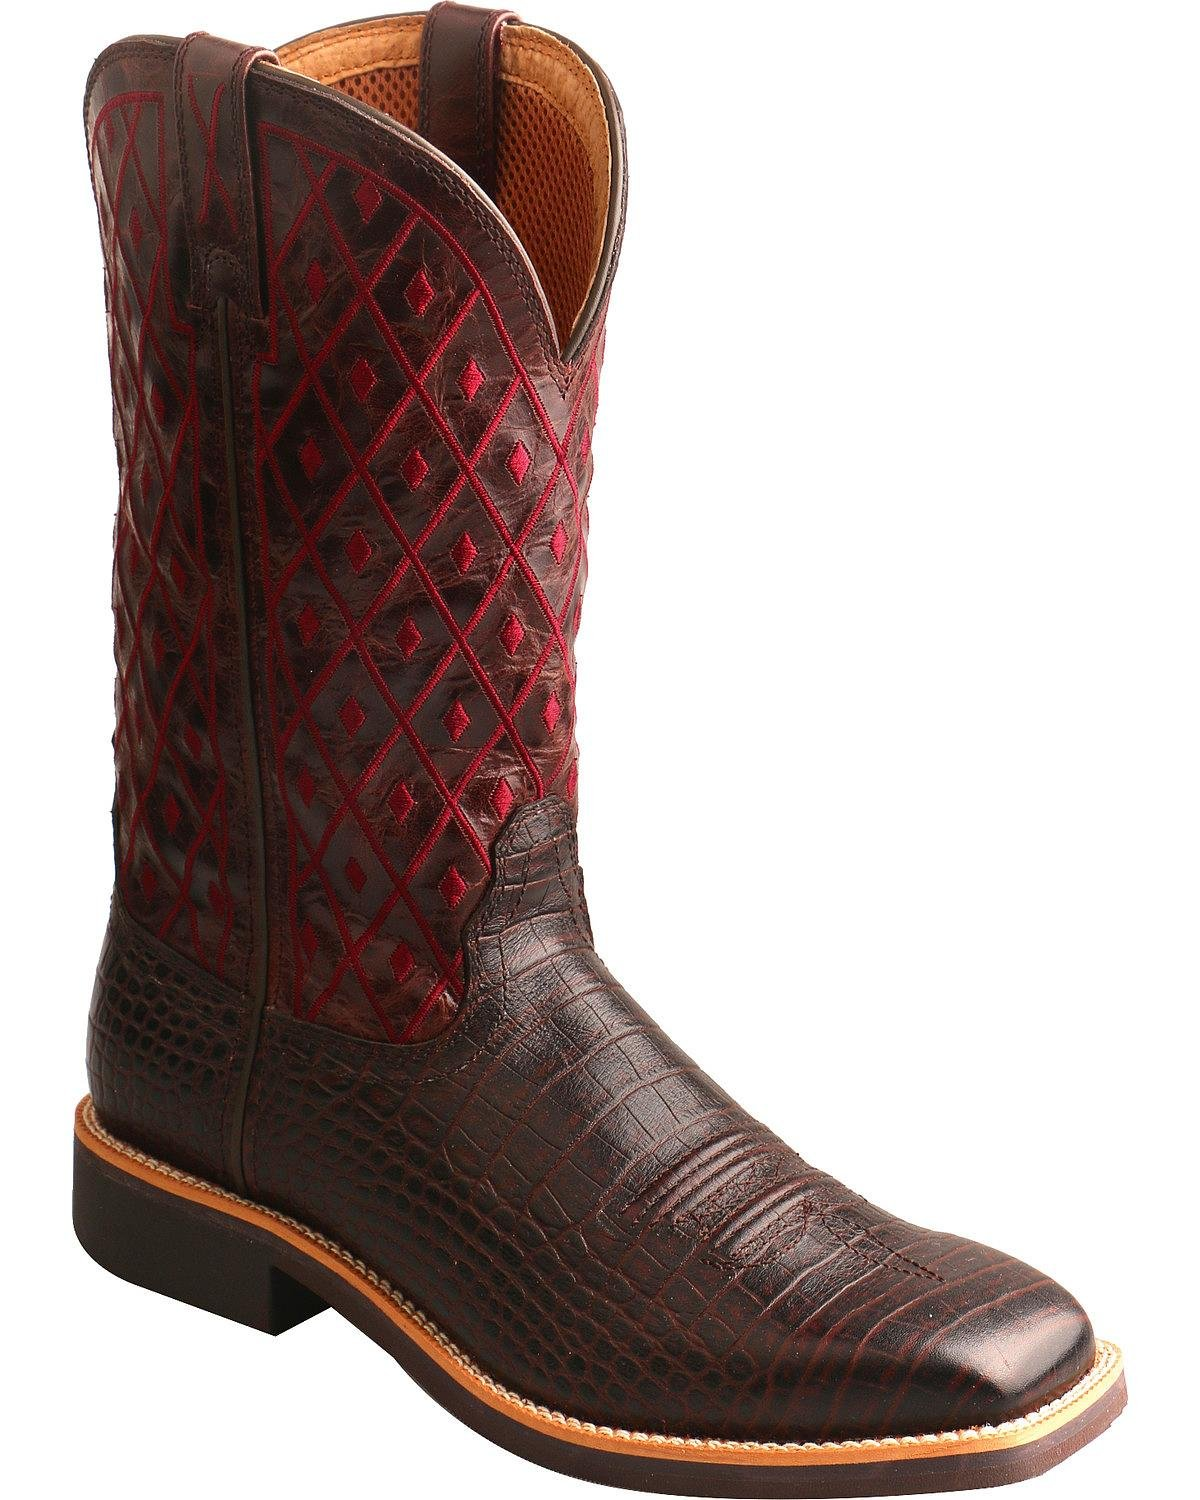 Twisted X Women's Top Hand Caiman Print Cowgirl Boot Square Toe Dark Brown 7 M by Twisted X